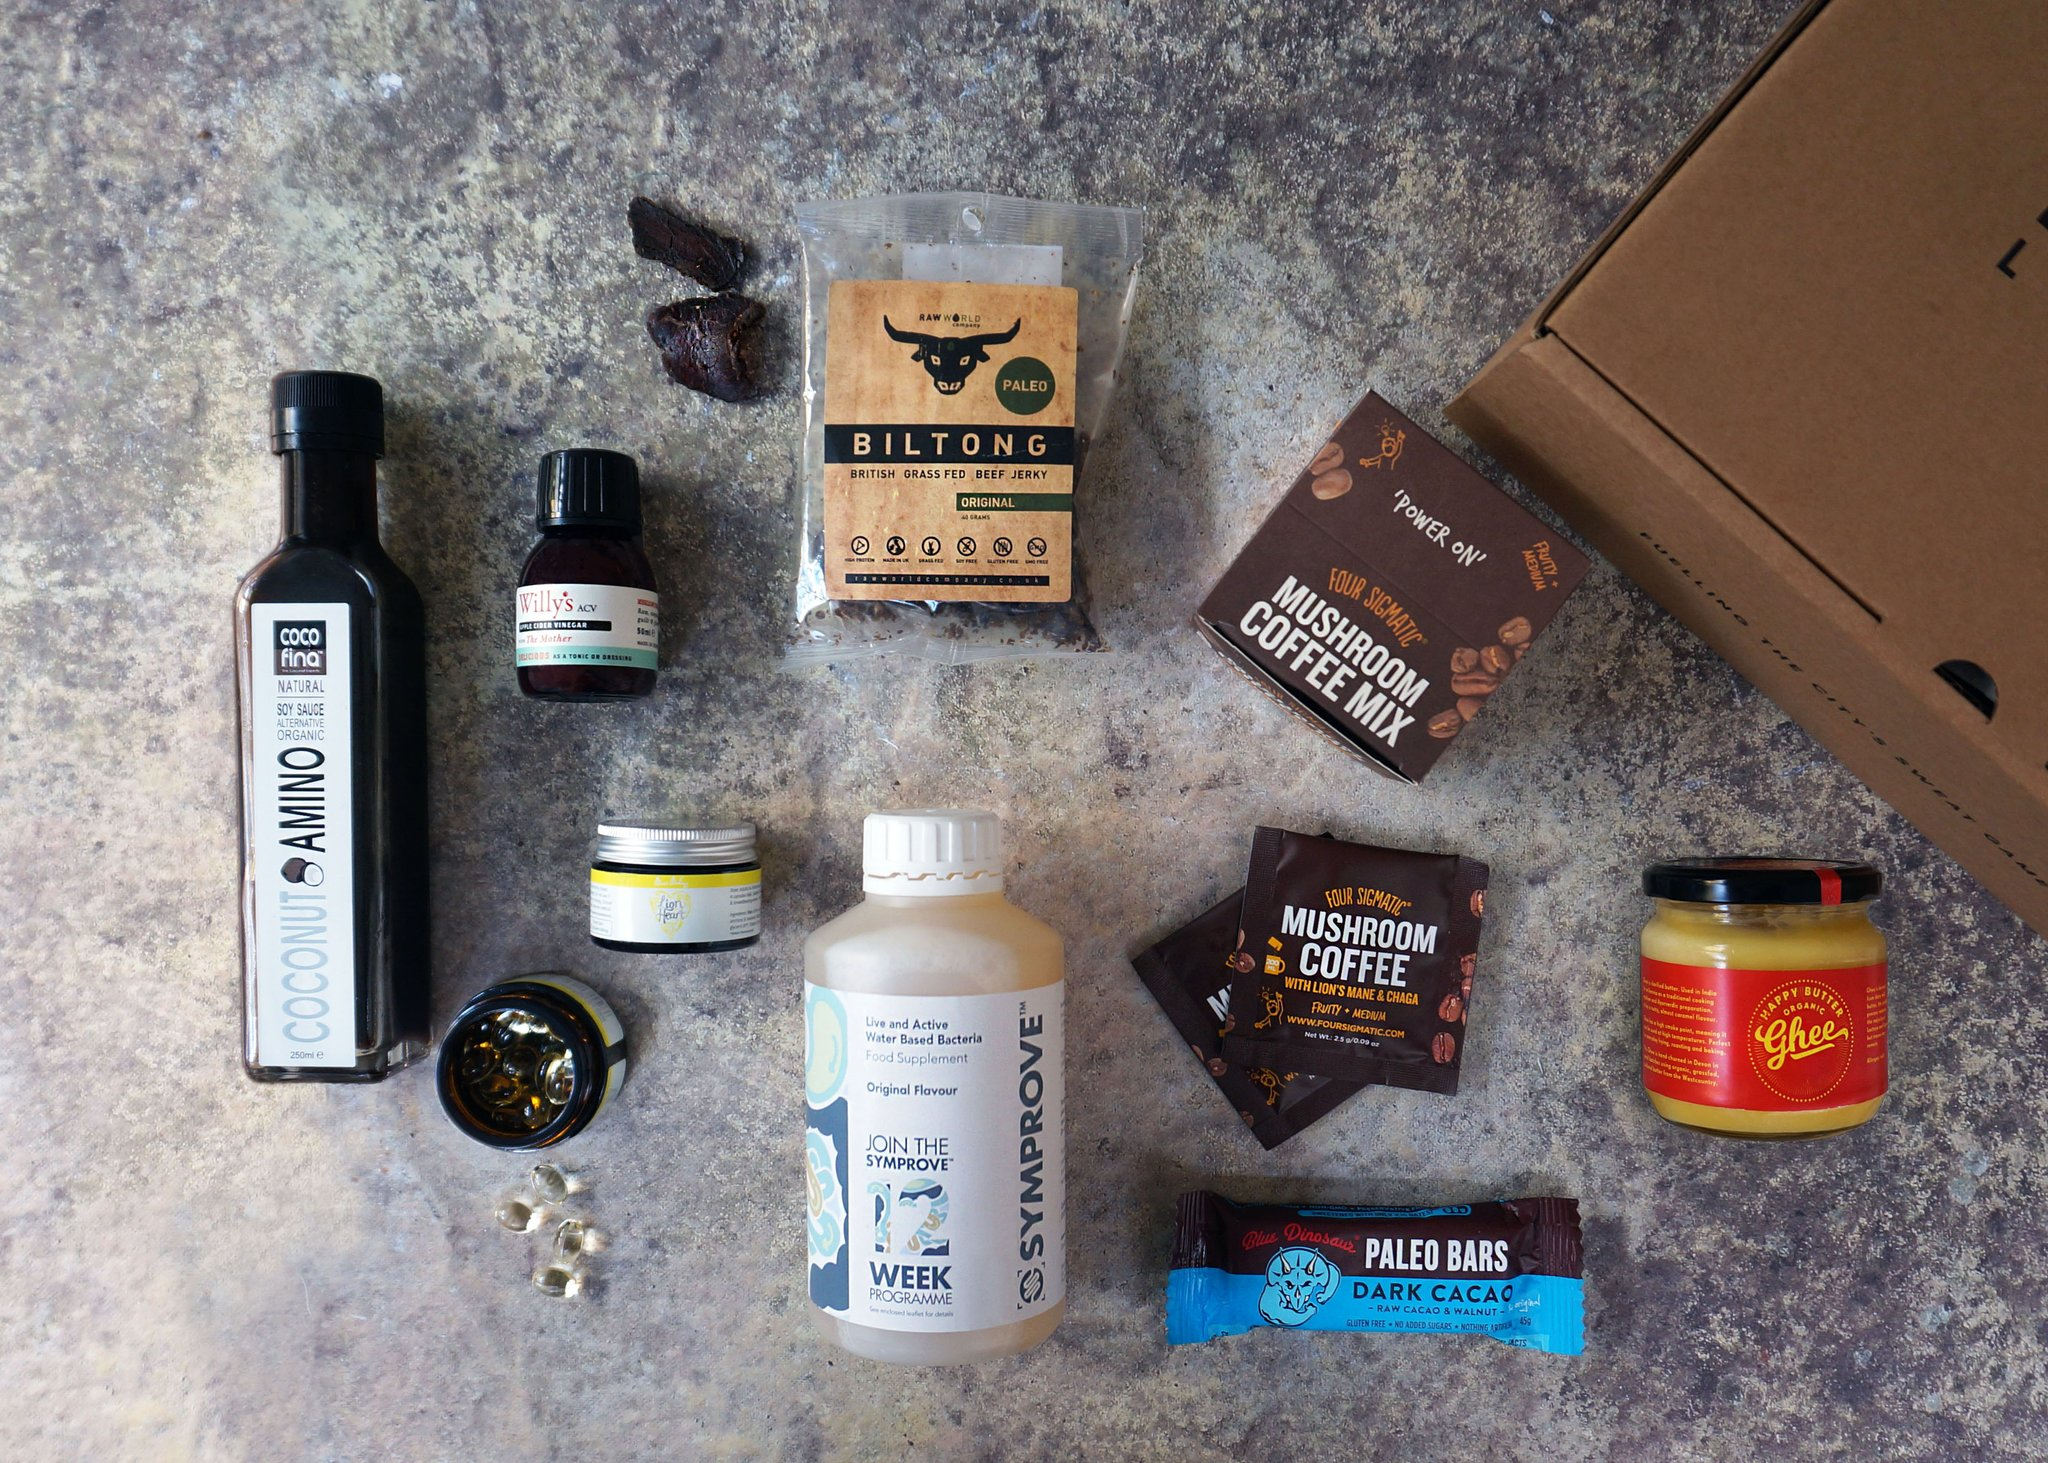 Review of The New Paleo Box by Fitty London